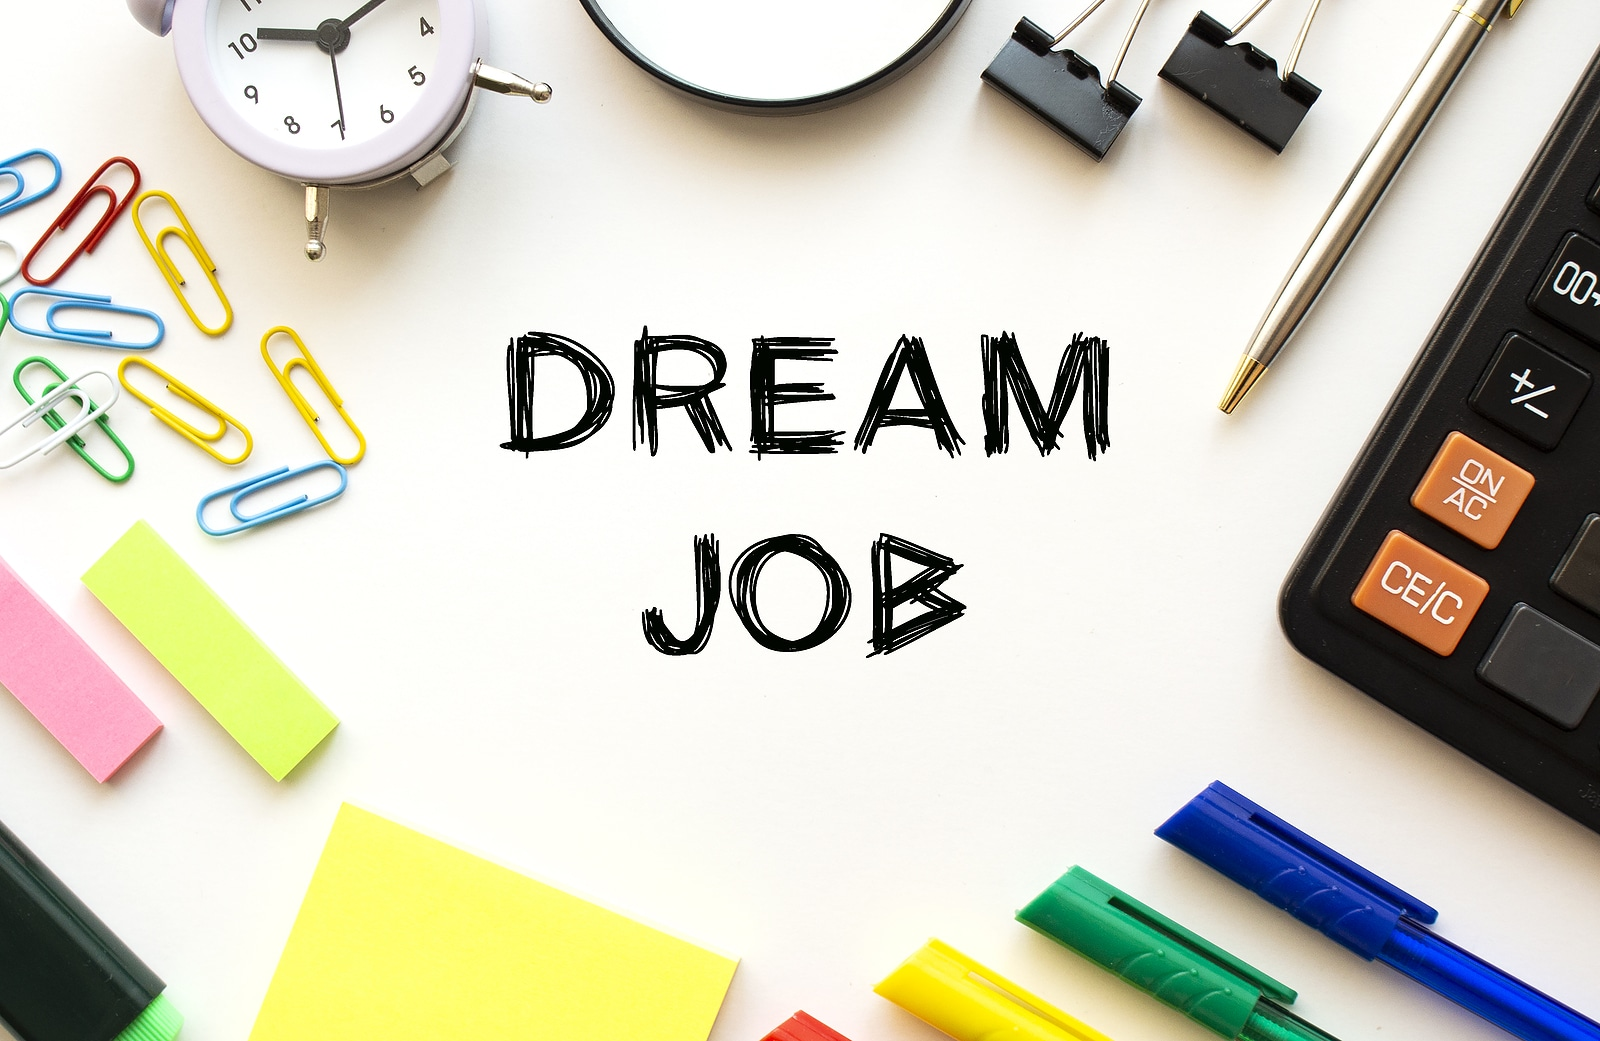 How to Find Your Dream Job - 7 Key Steps